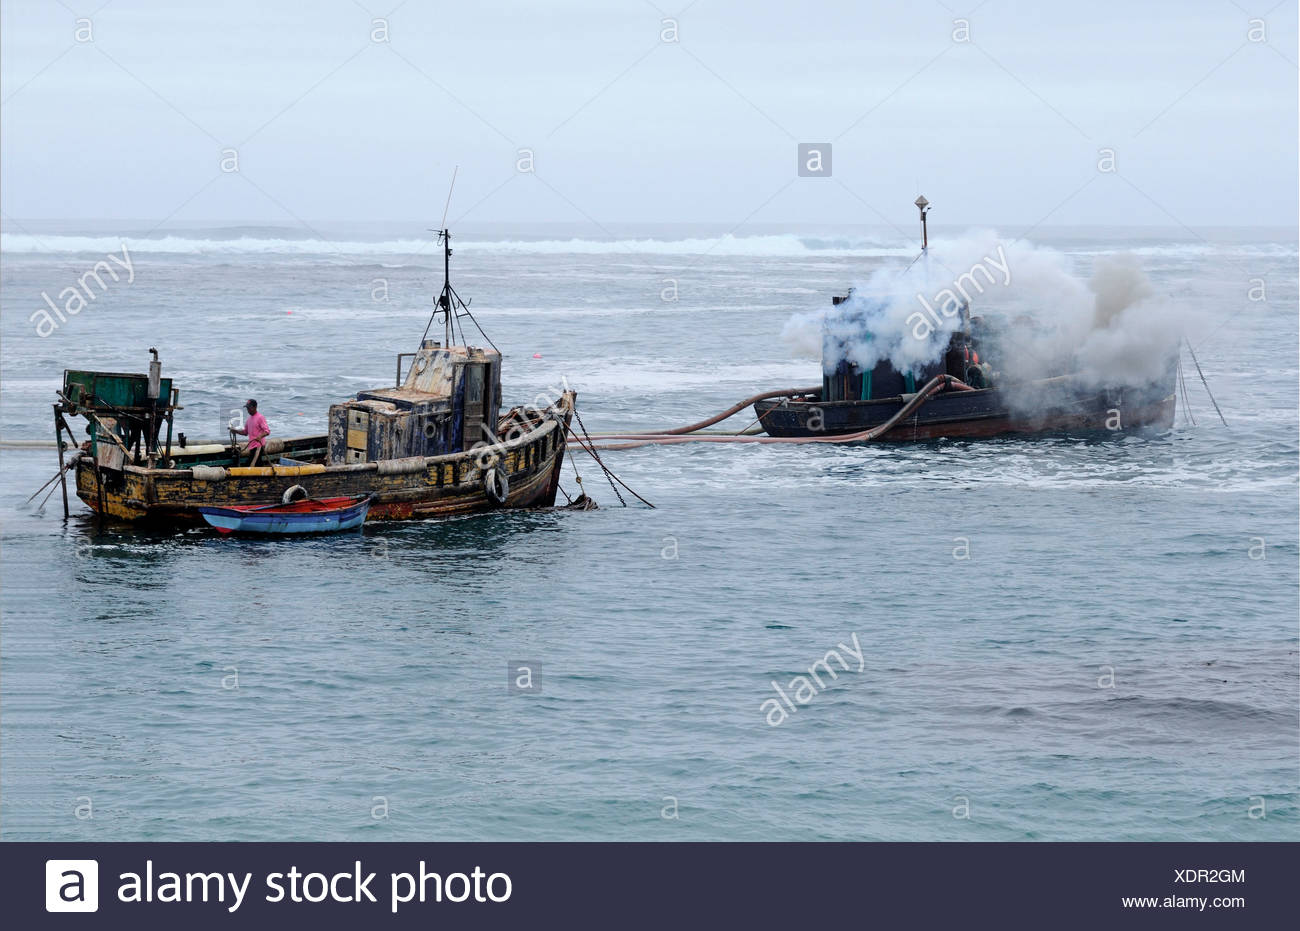 Off-shore diamond mining, diamonds sweepers with hoses to suck the silt from the seabed, Port Nolloth, Namaqualand, South Africa - Stock Image